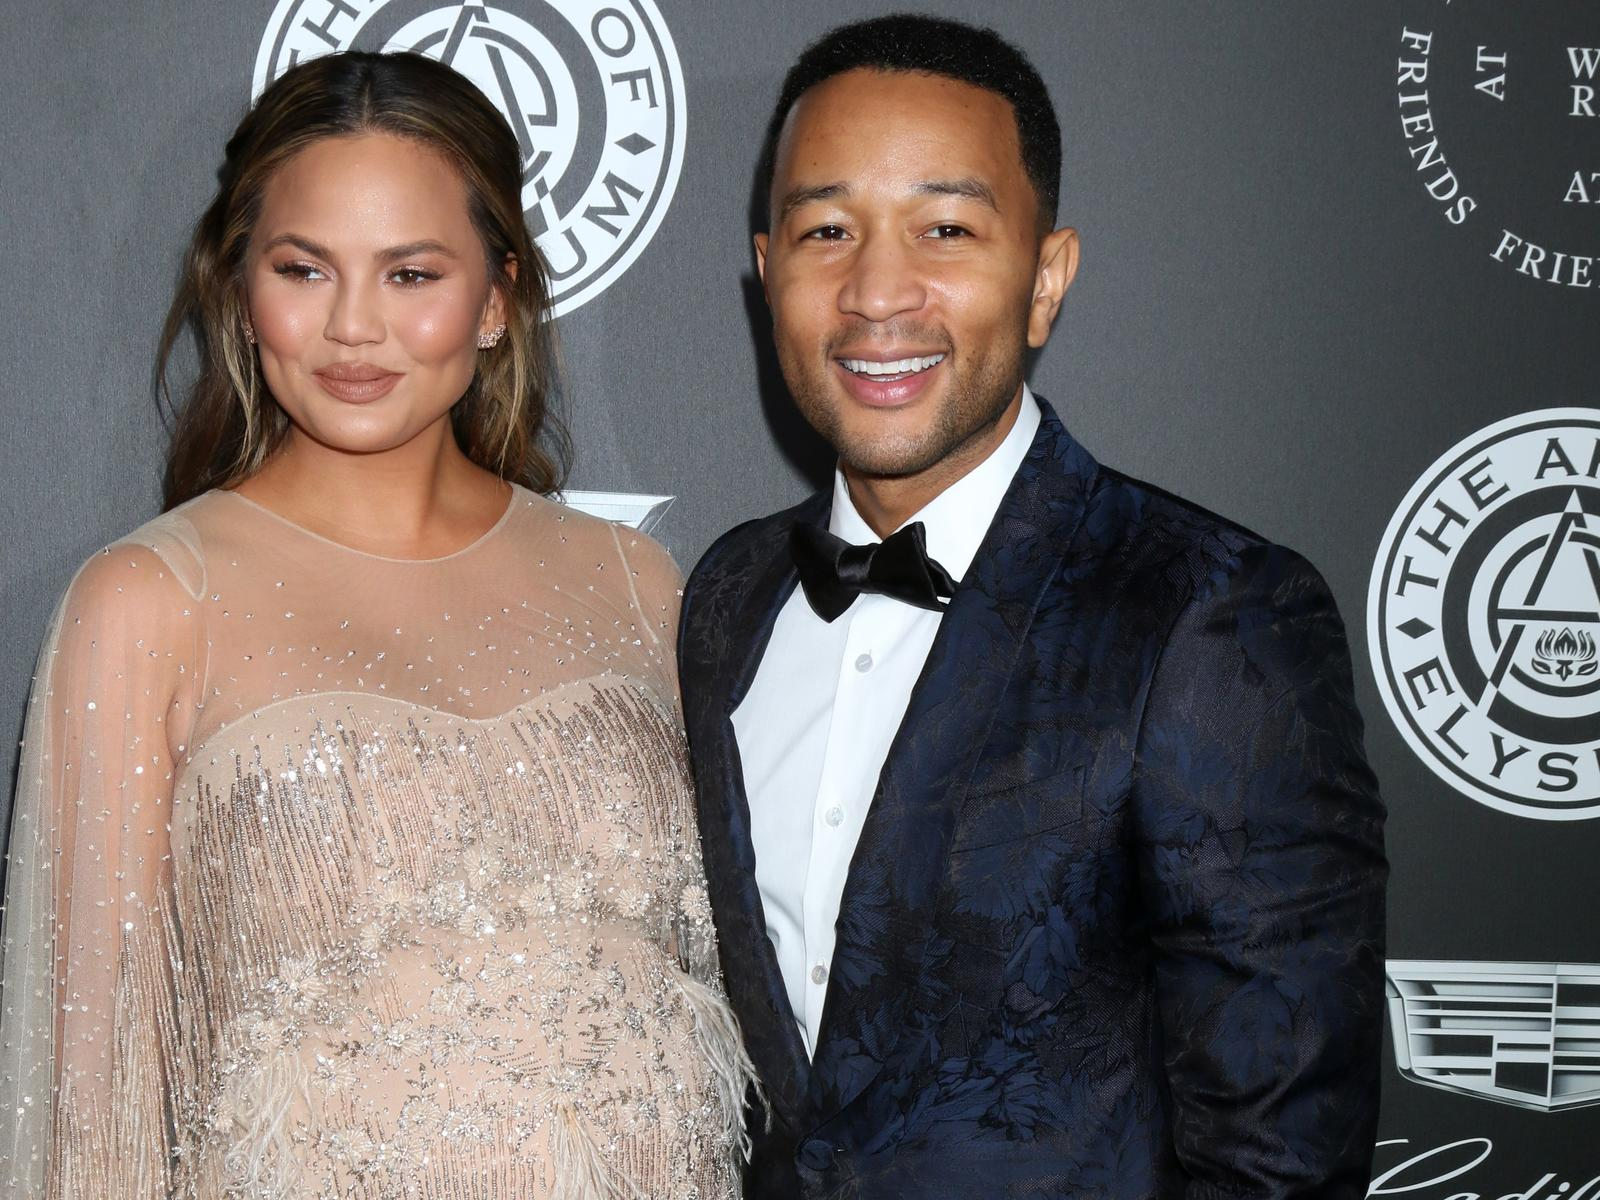 Chrissy Teigen and John Legend Gold Dress Black Tuxedo